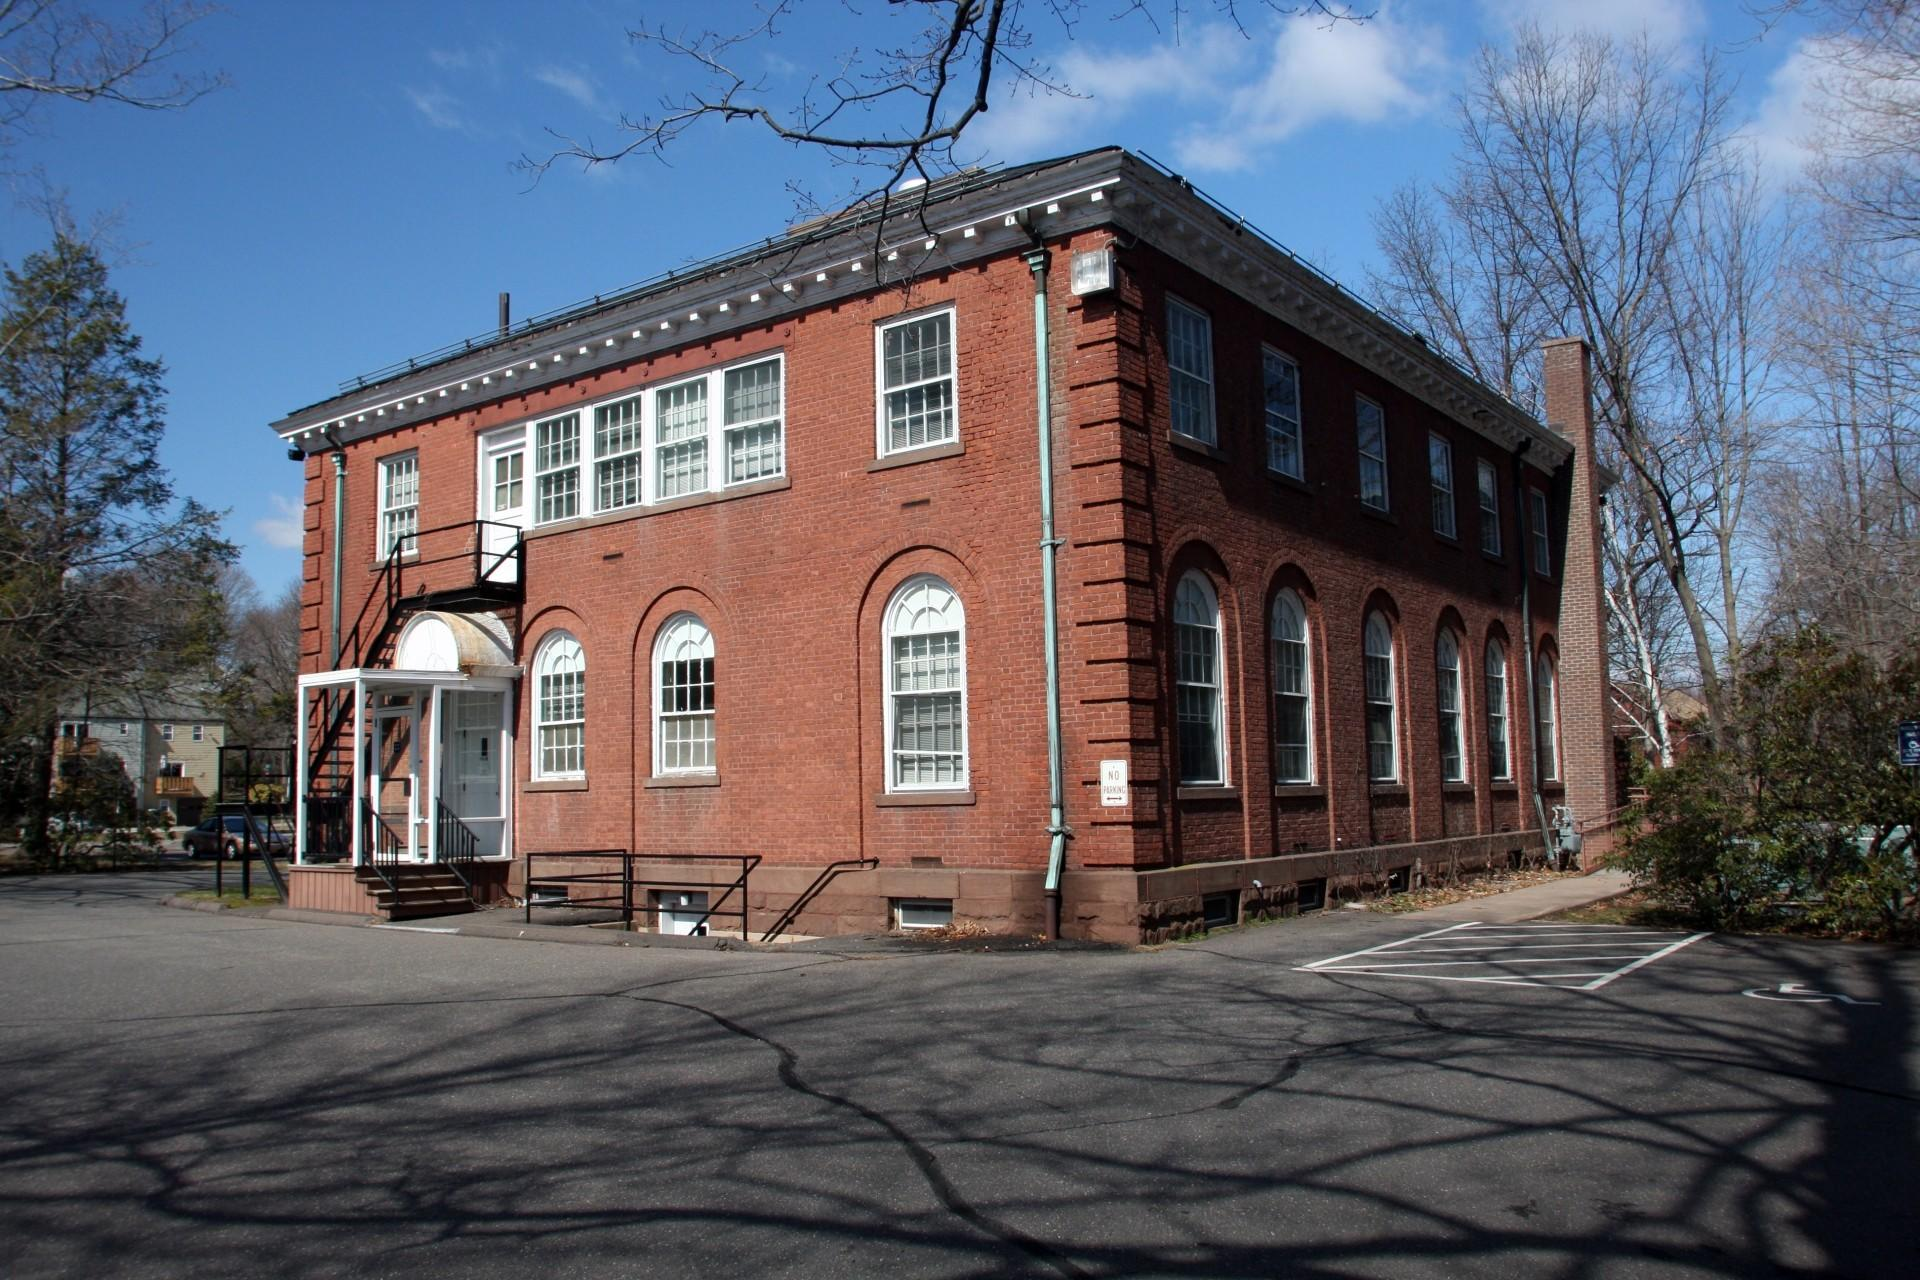 The former board of education building is back on the market.